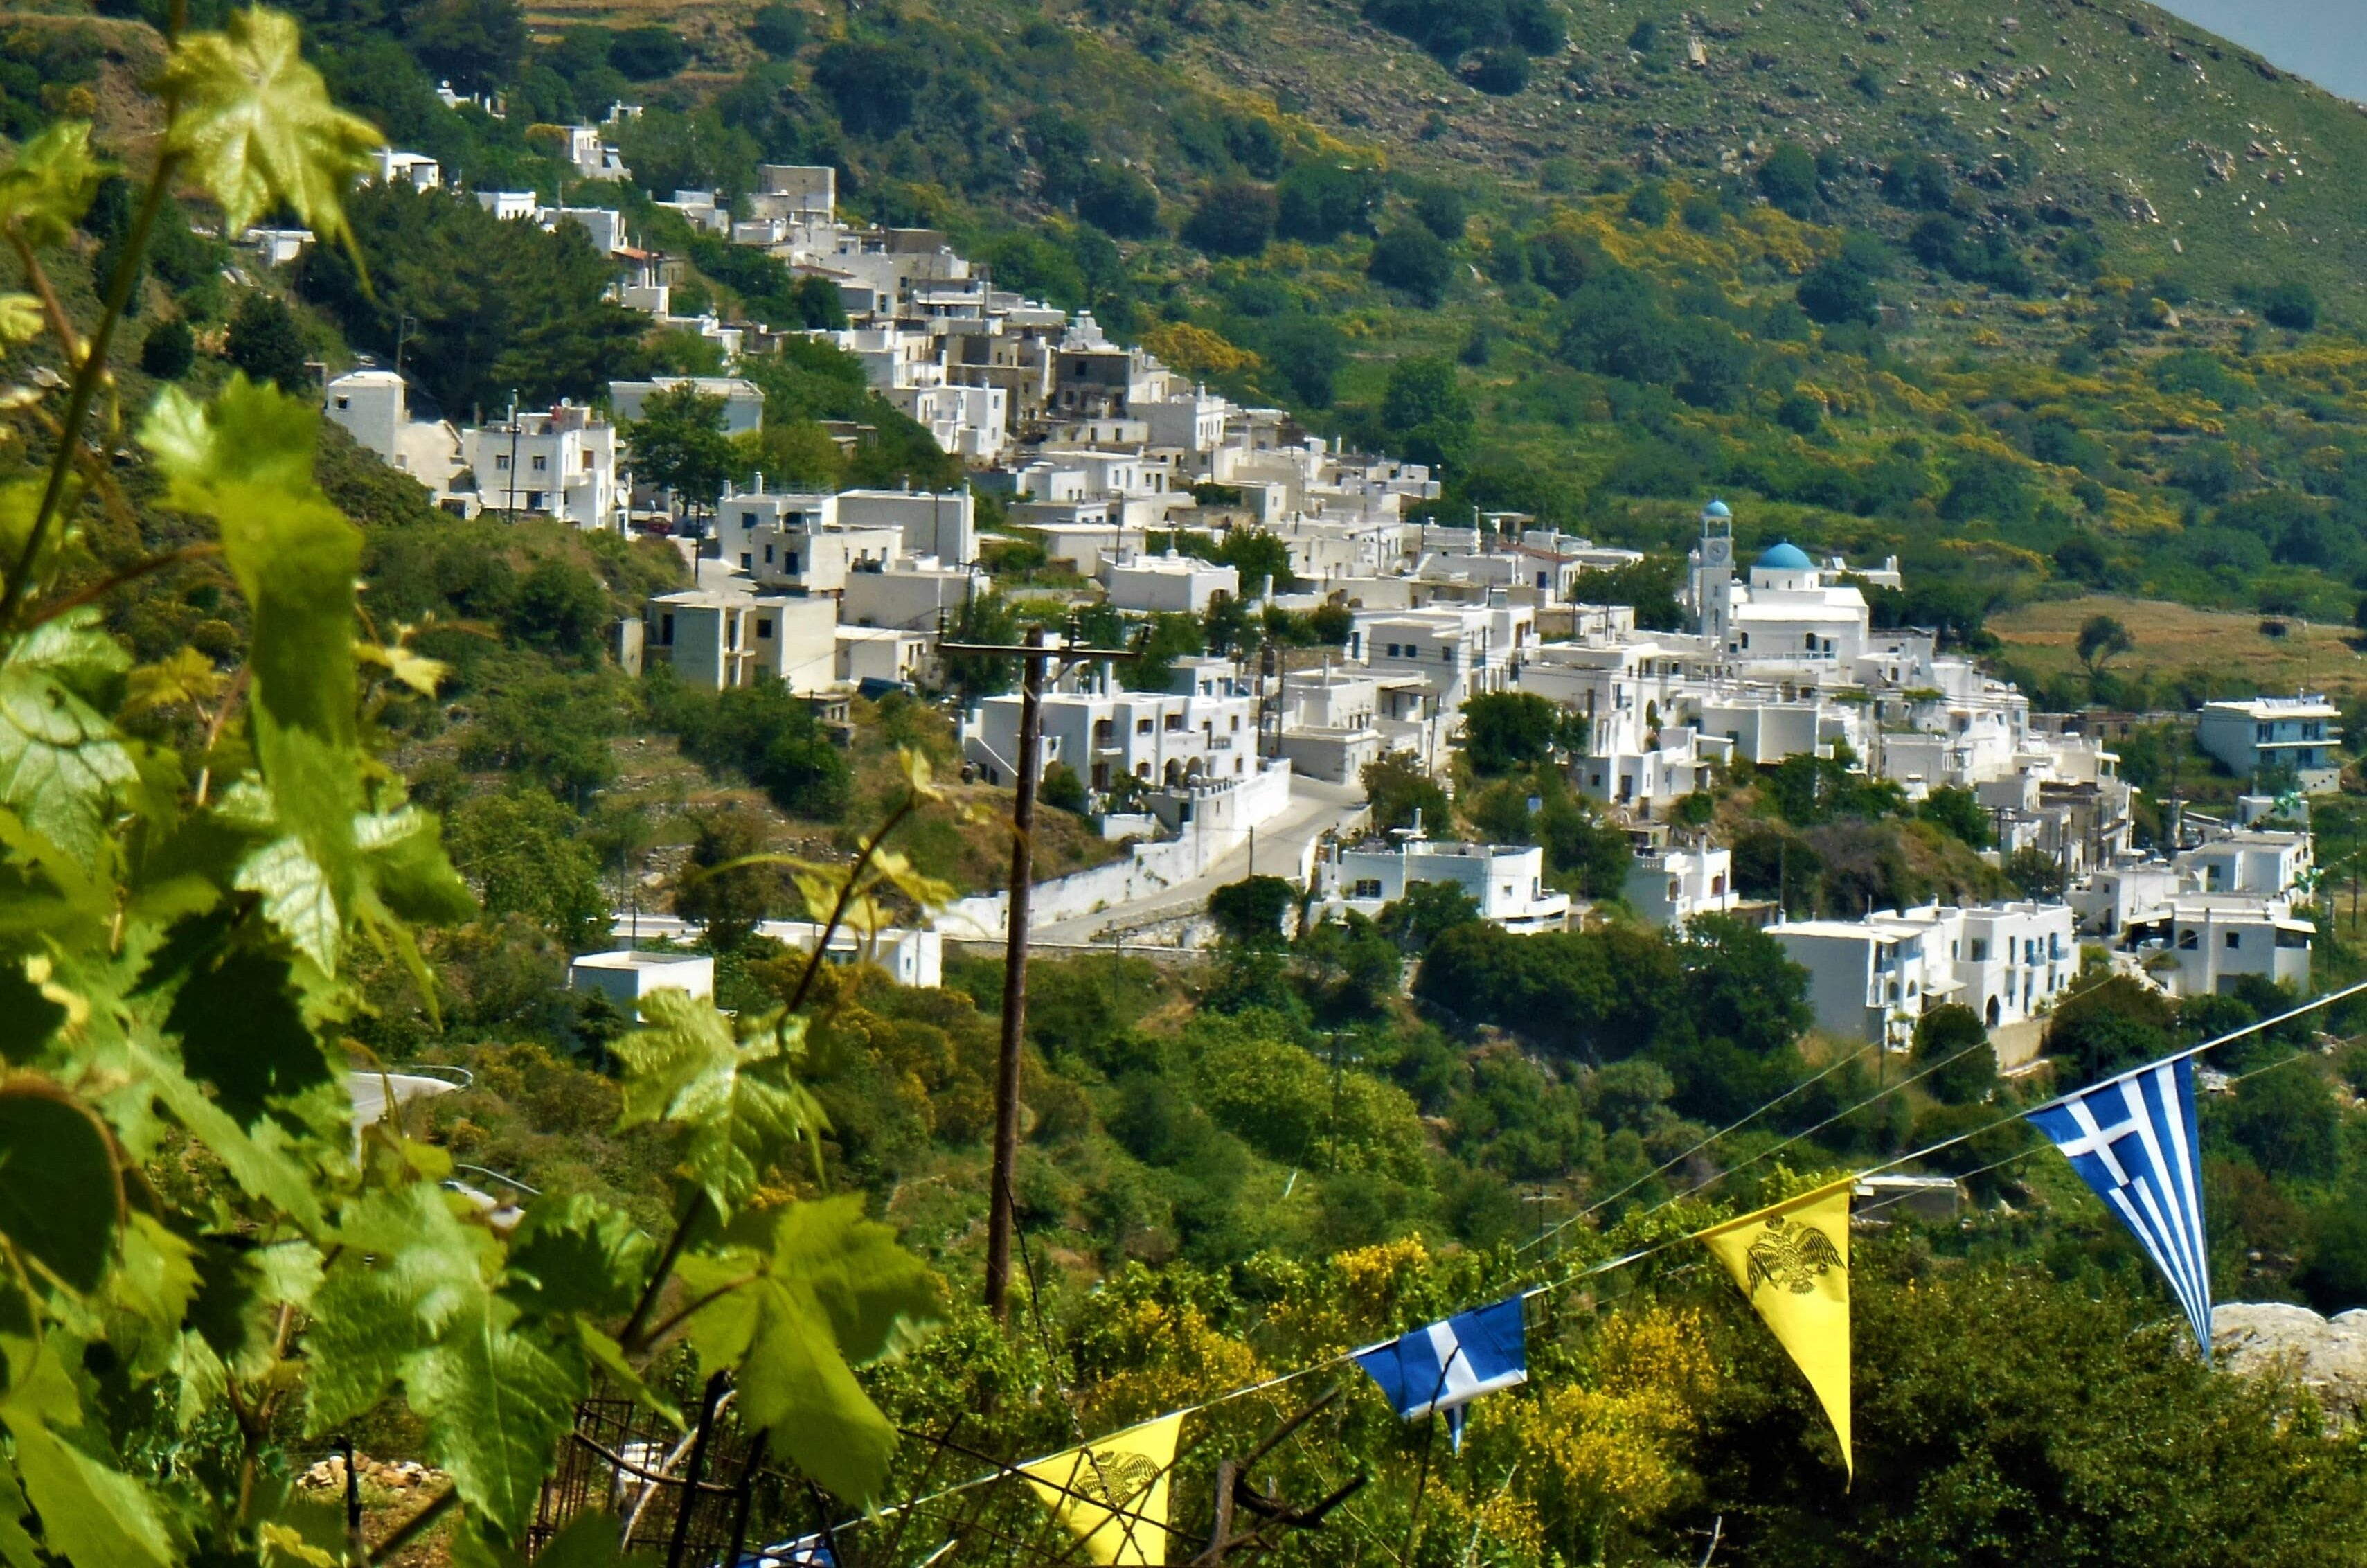 Naxos: a real mountain village in the Cyclades